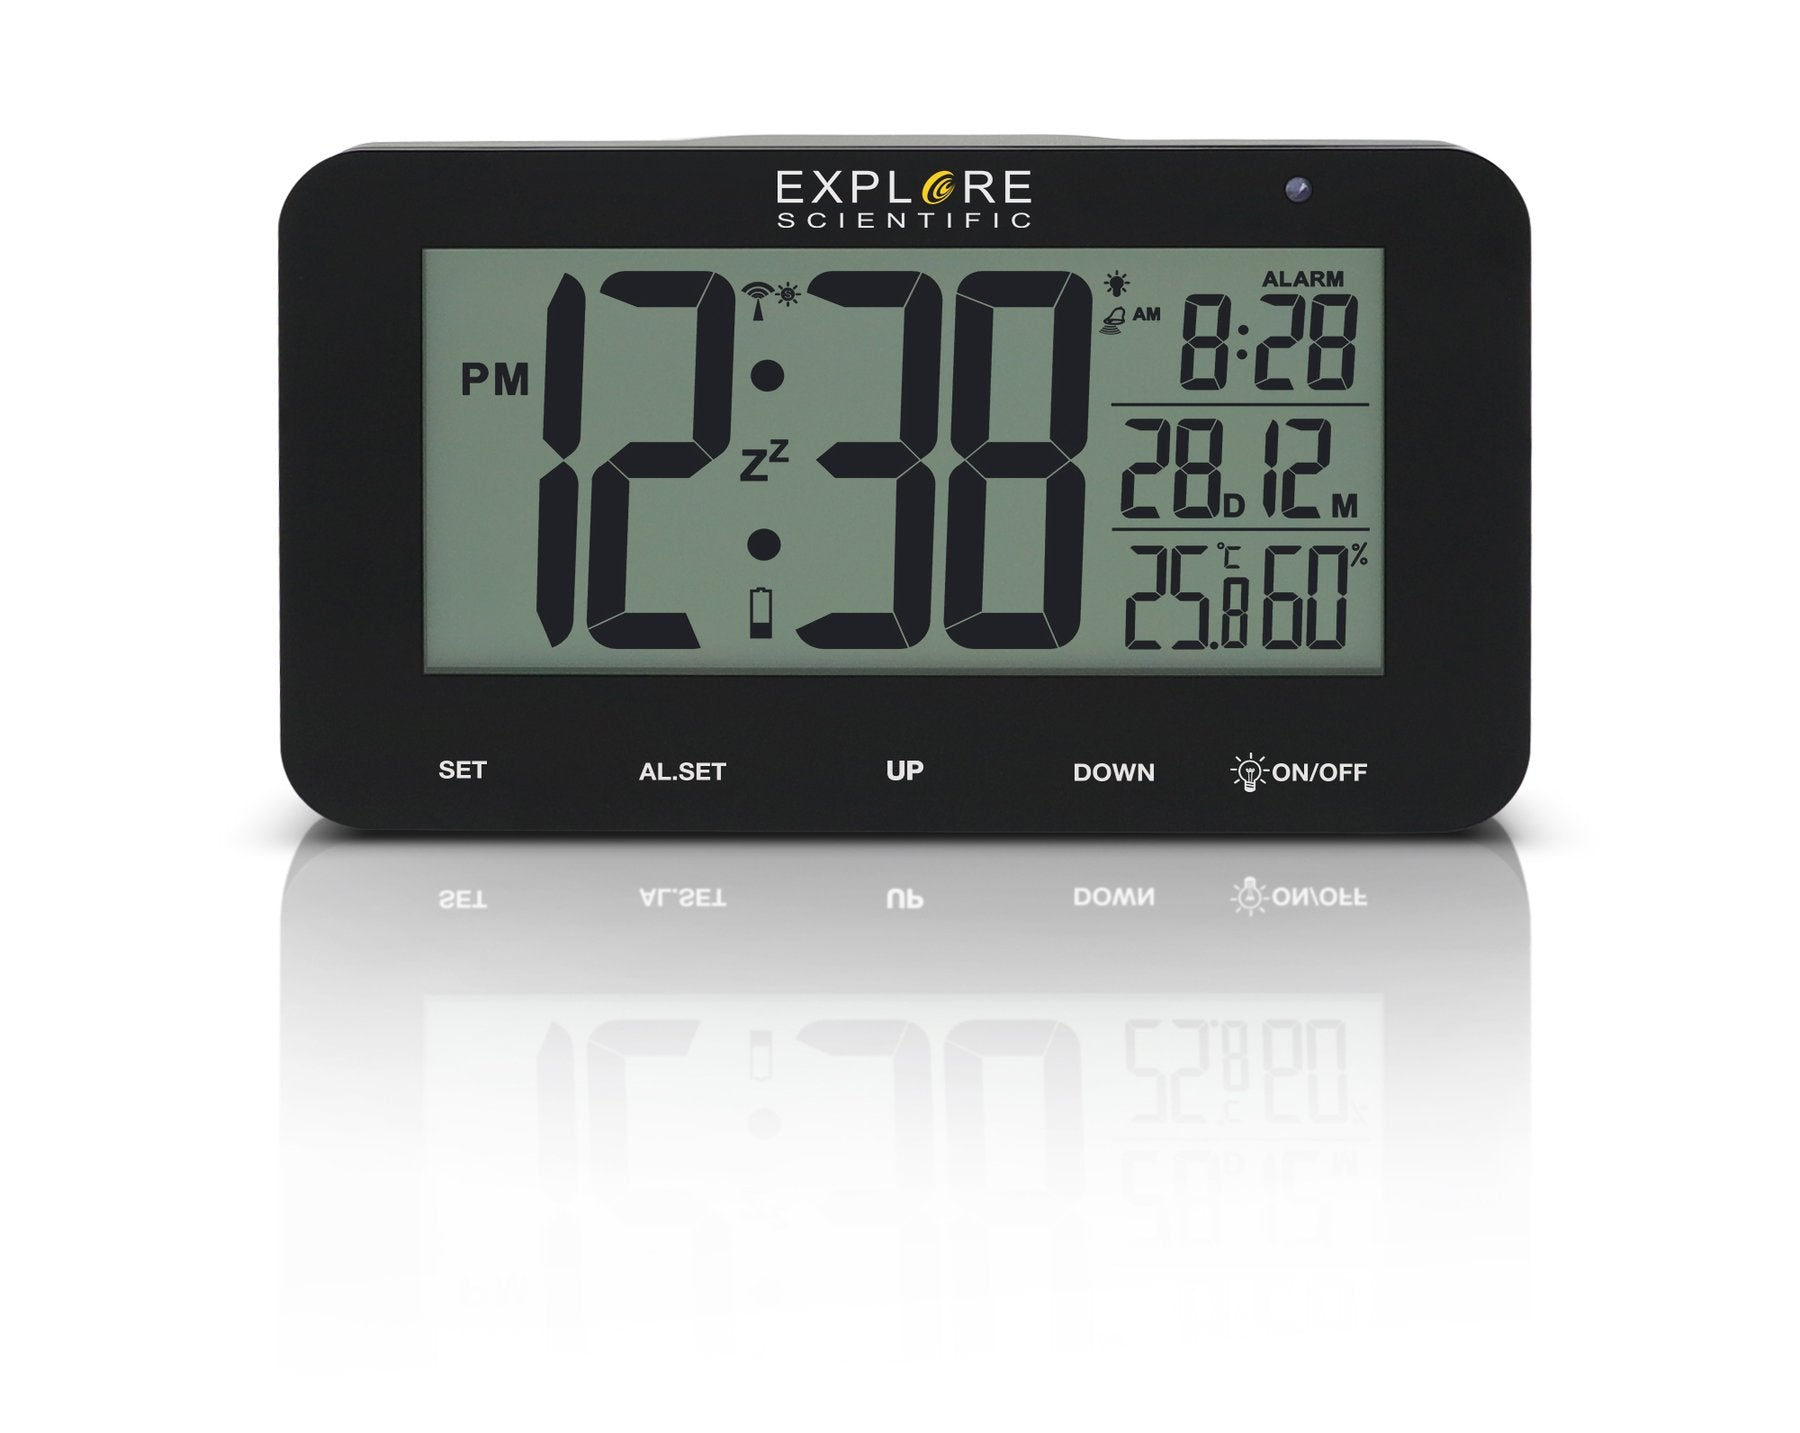 Explore Scientific Large Display Radio Controlled Alarm Clock - RDC1004CM3000